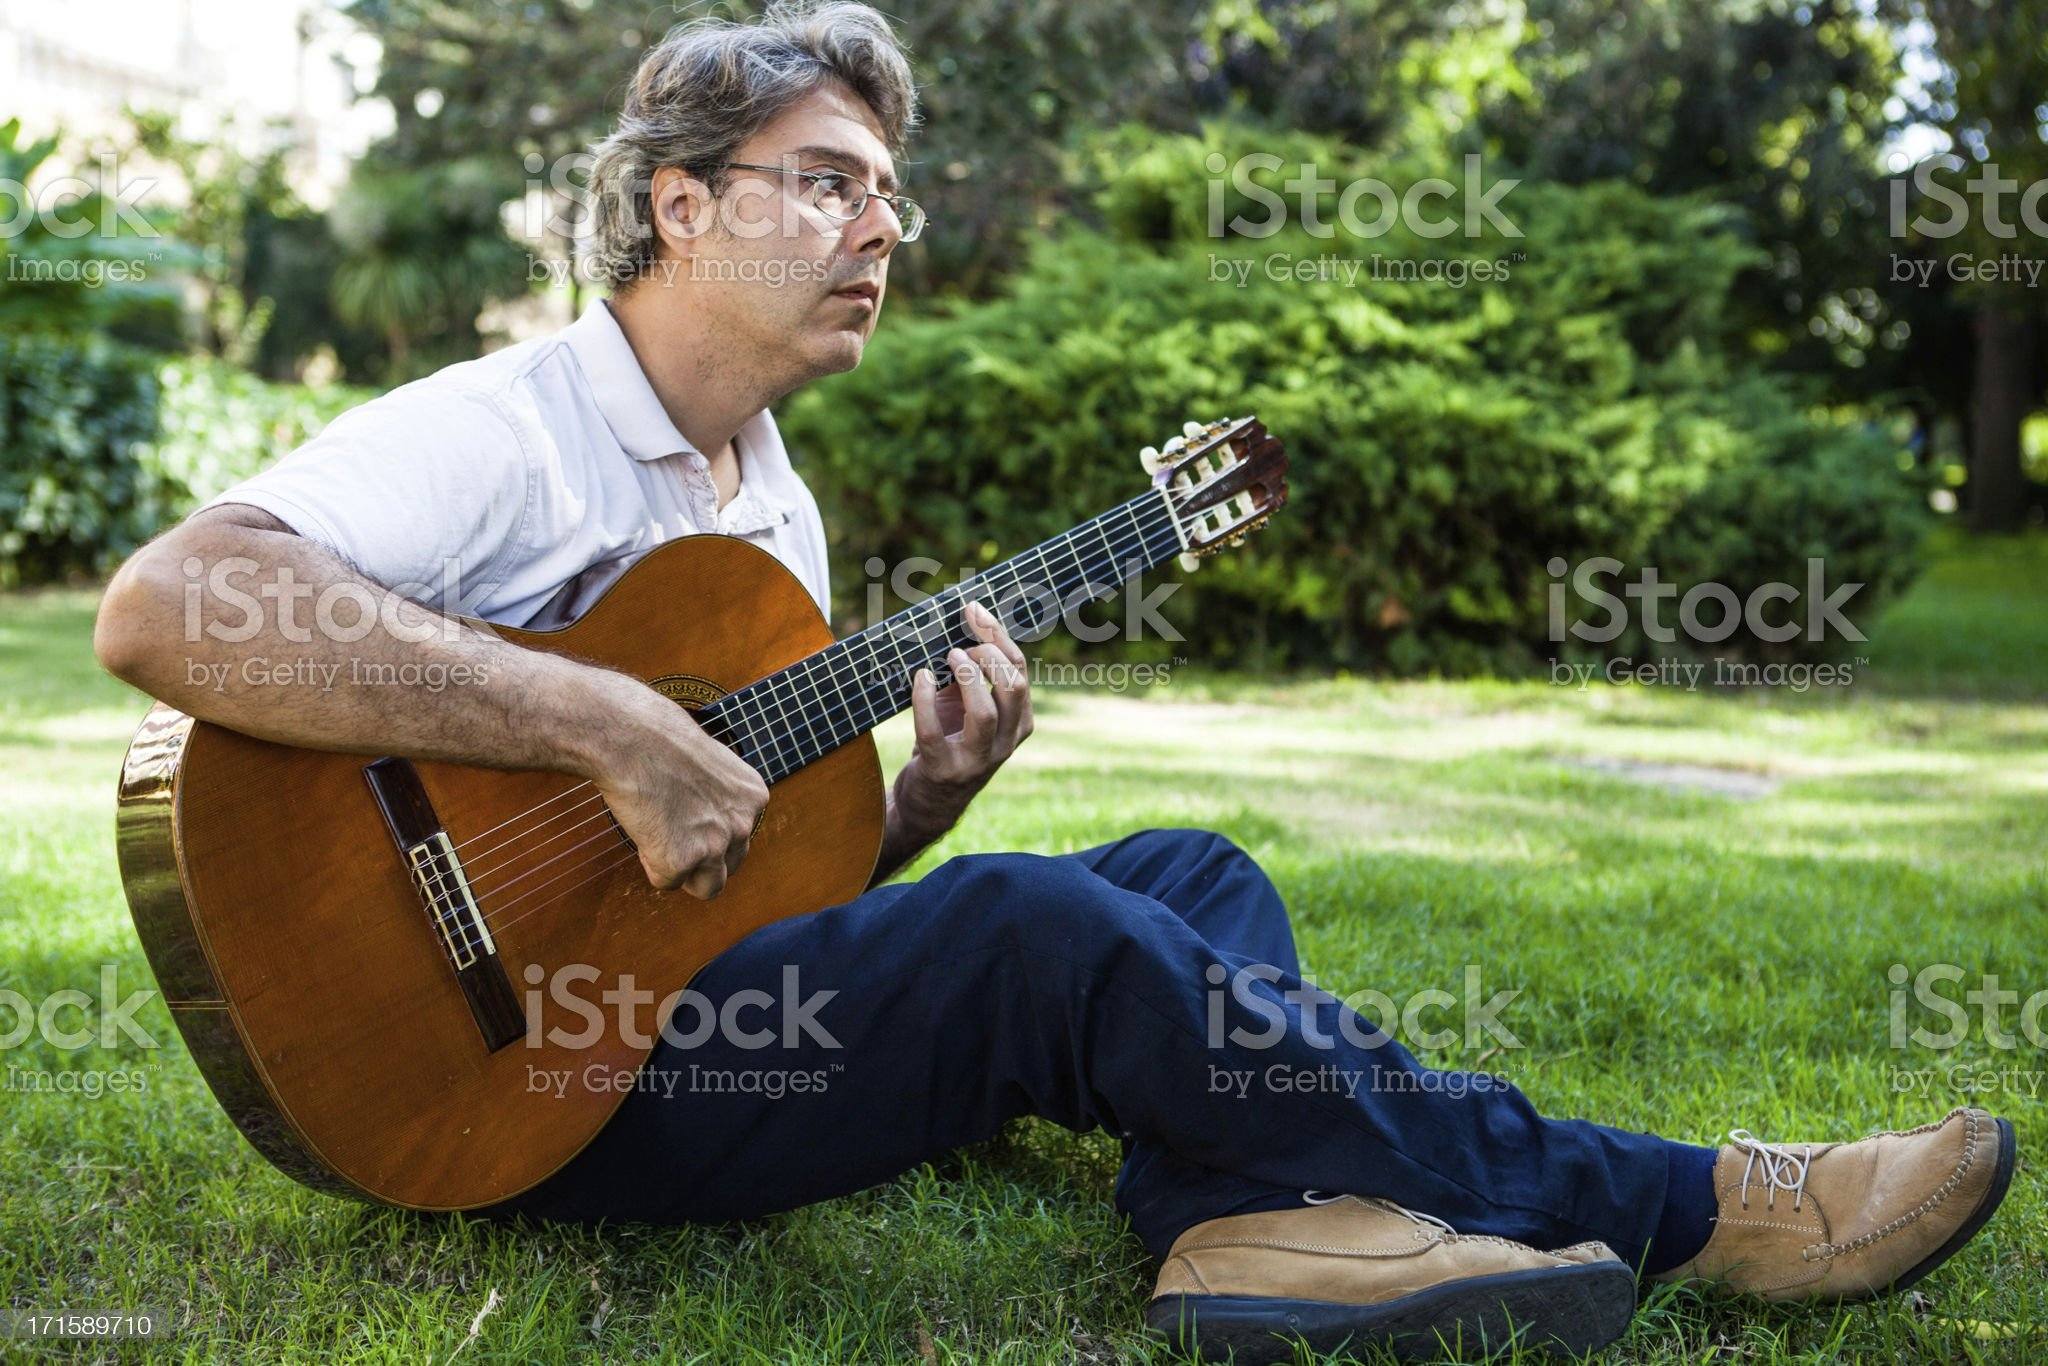 Man Playing Classic Guitar Outdoors royalty-free stock photo